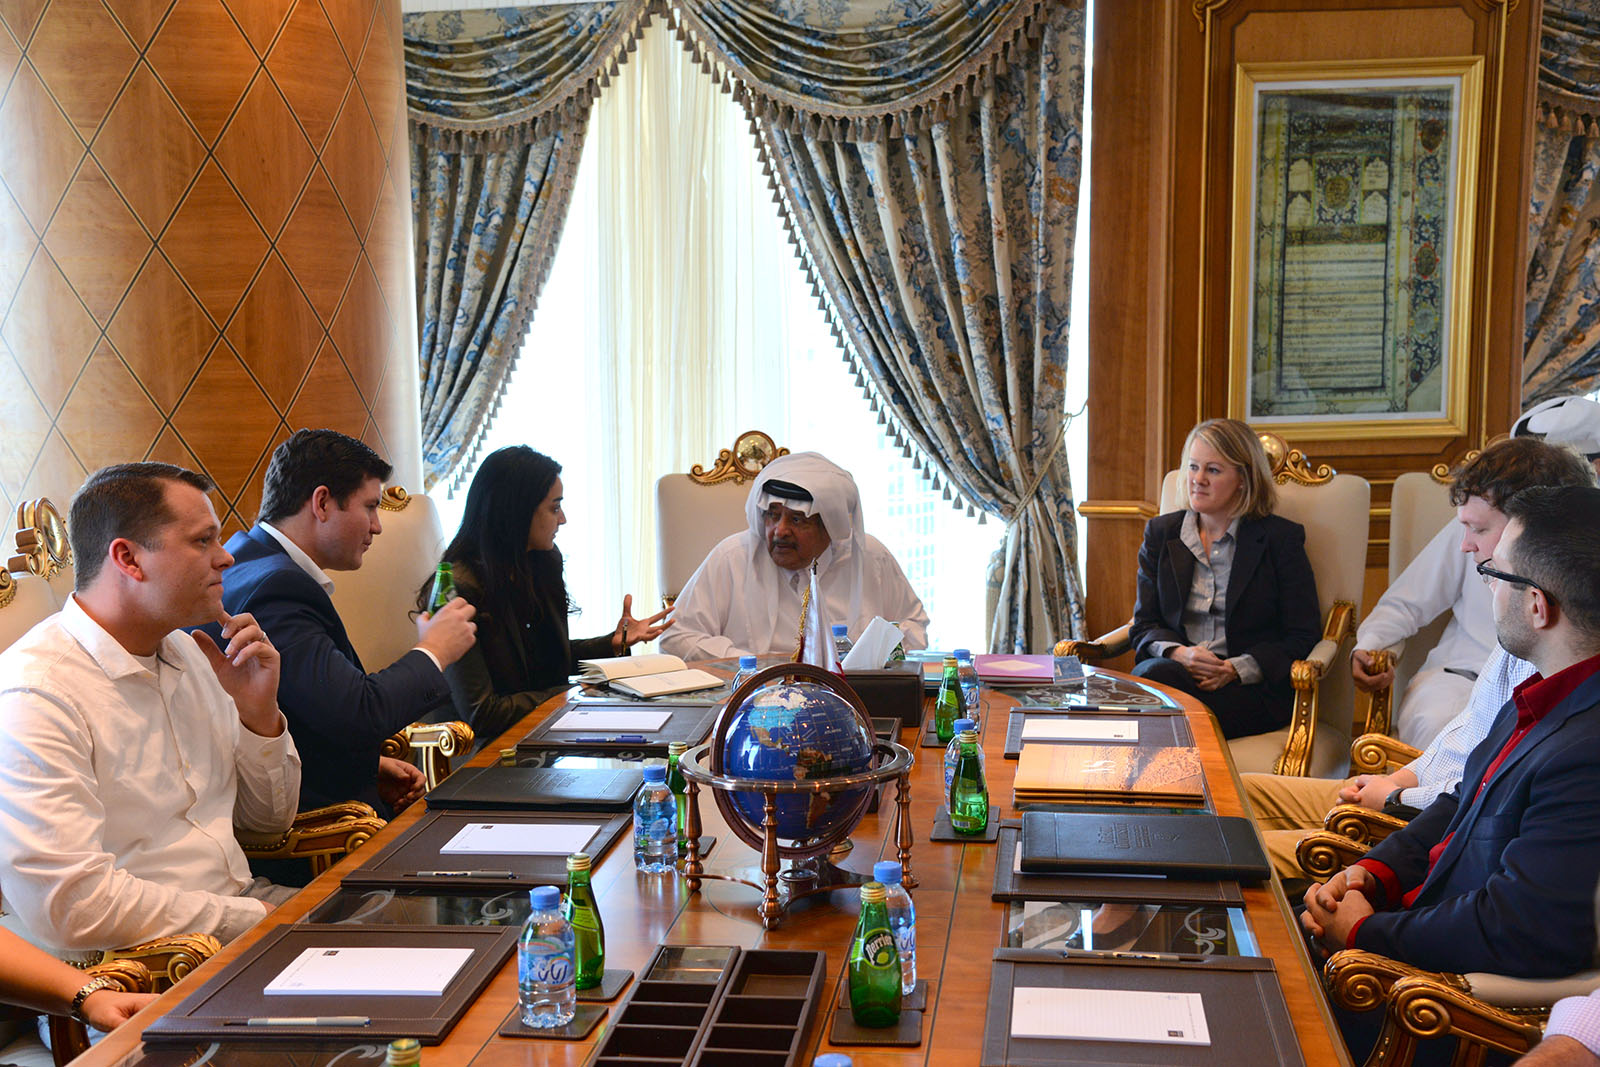 Students meet with Sheikh Faisal Bin Qassim Al Thani, Chairman & CEO of Al Faisal Holding